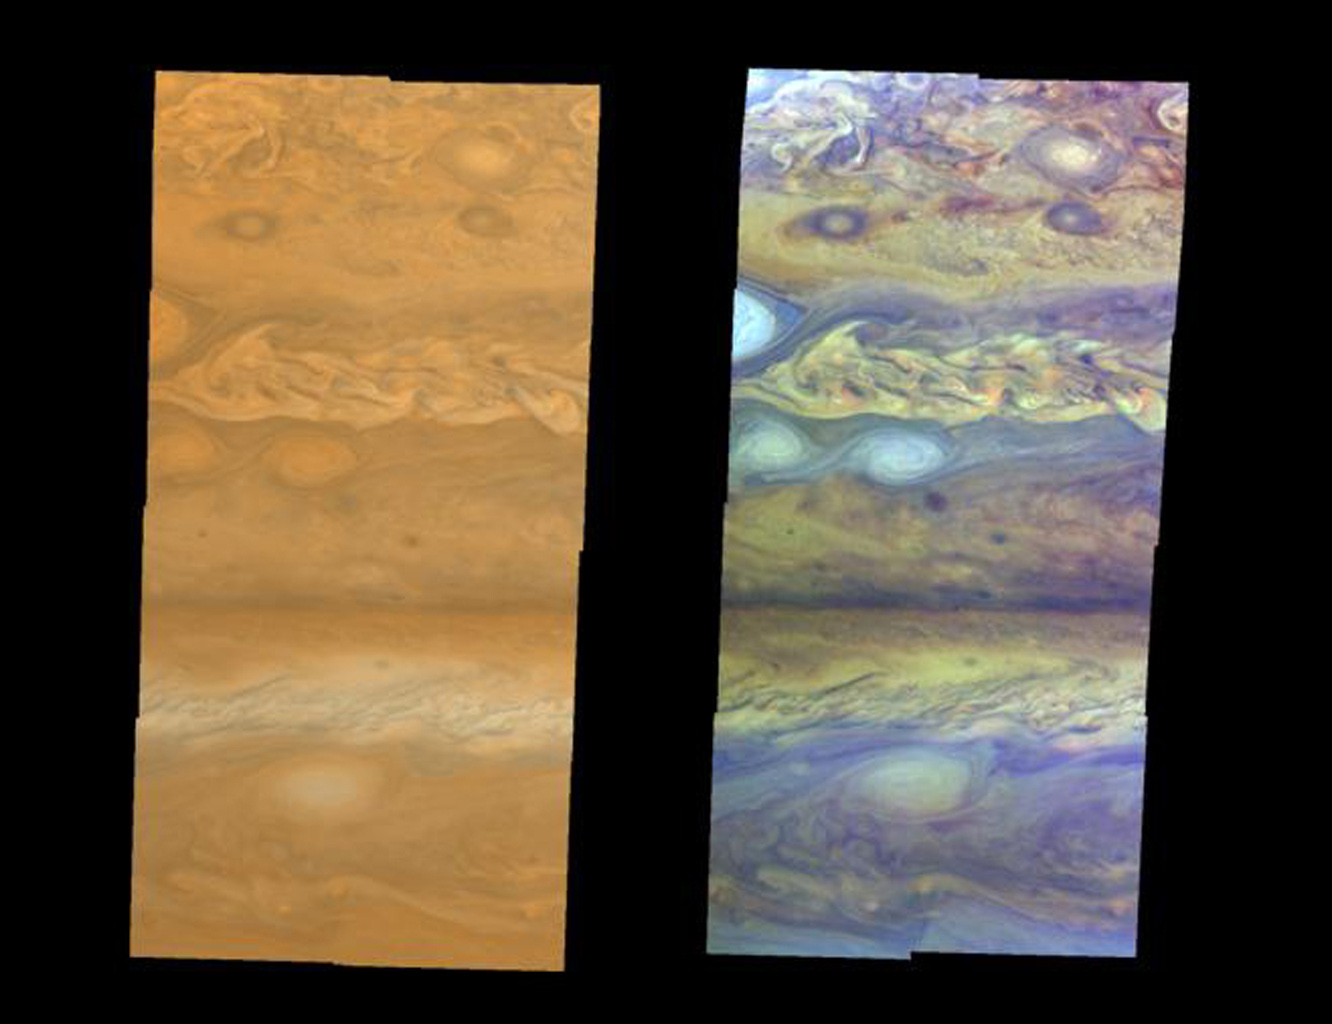 True-color (left) and false-color (right) mosaics of Jupiter's northern hemisphere between 10 and 50 degrees latitude. This image was taken by NASA's Galileo spacecraft on April 3, 1997 at a distance of 1.4 million kilometers.